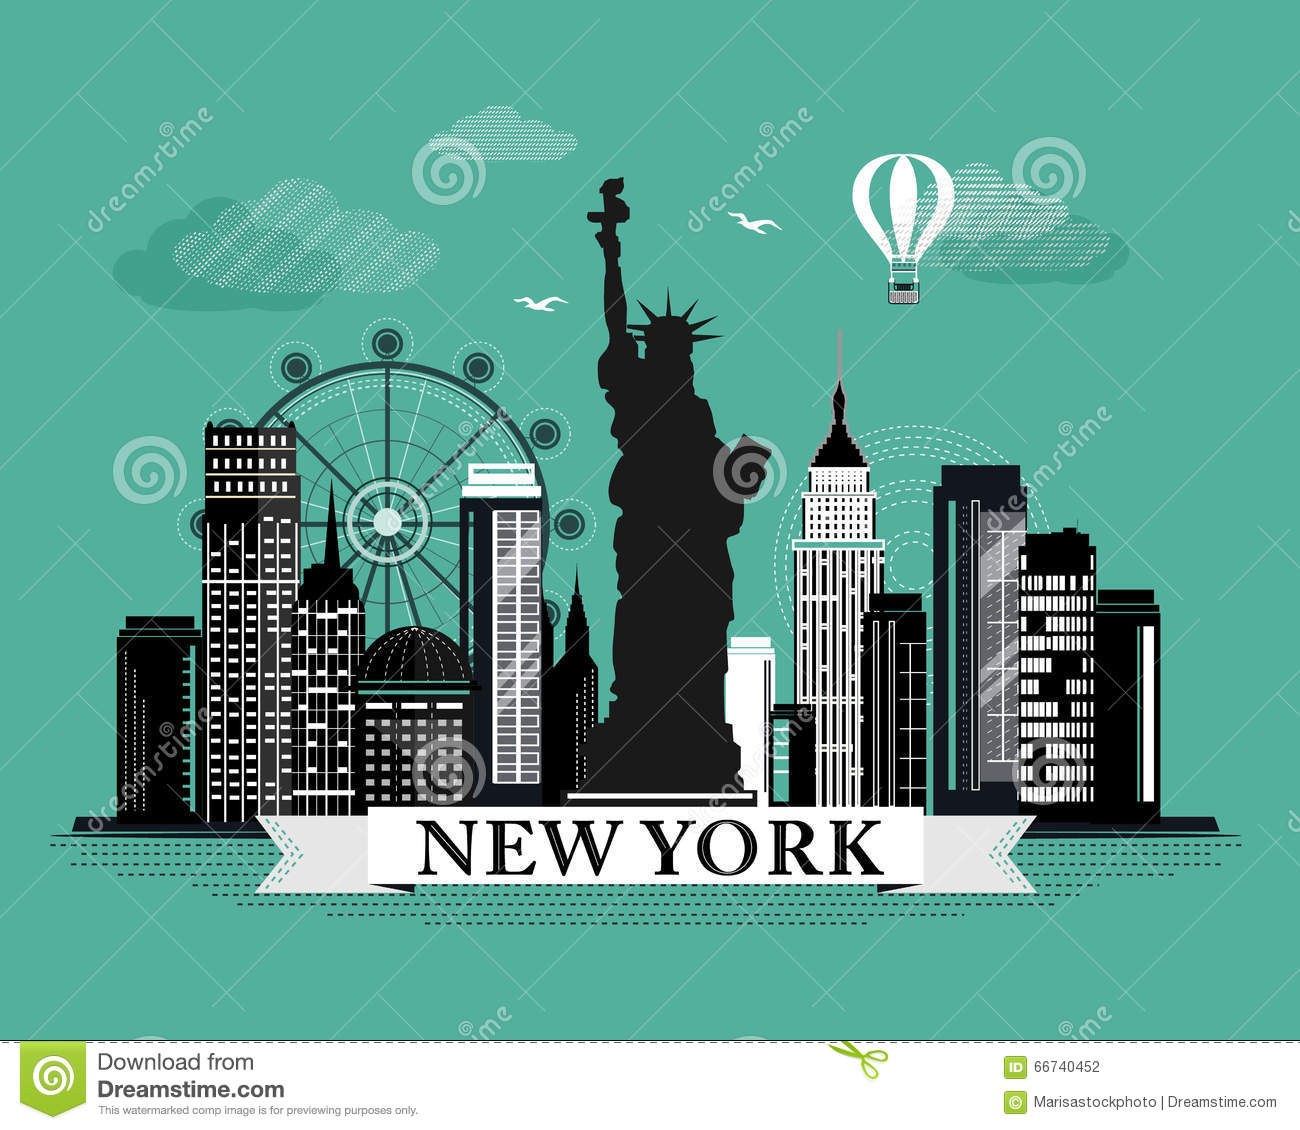 Affiche New York Cool Graphic New York City Skyline Poster With Retro